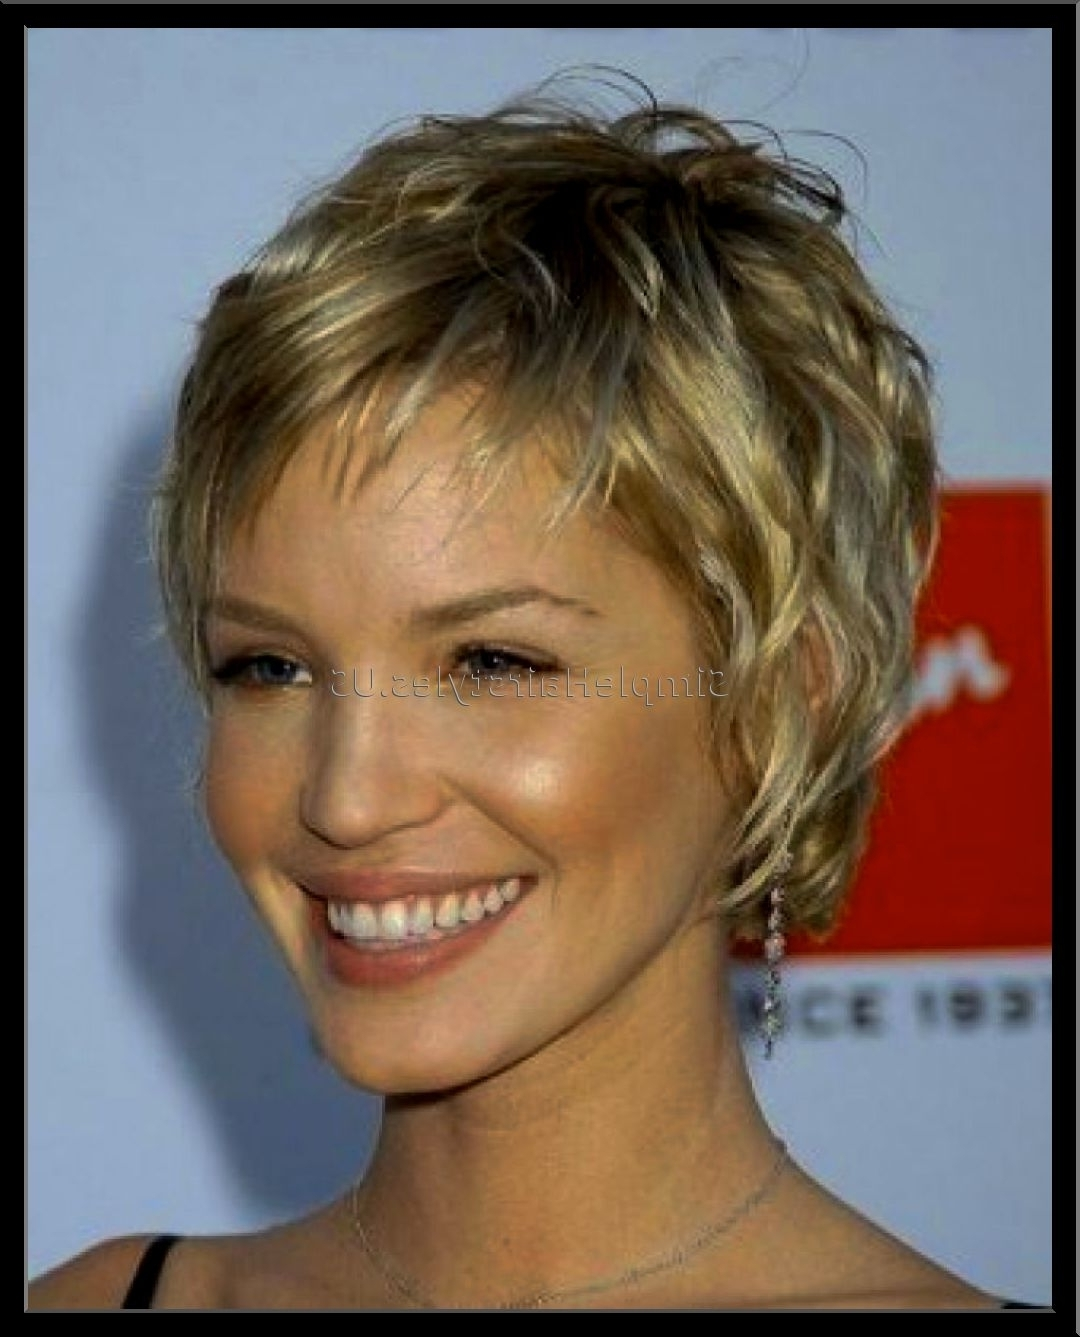 Very Short Pixie Hairstyles For Women Over 50 Easy Chic Short With 2018 Pixie Hairstyles For Women Over (View 11 of 15)